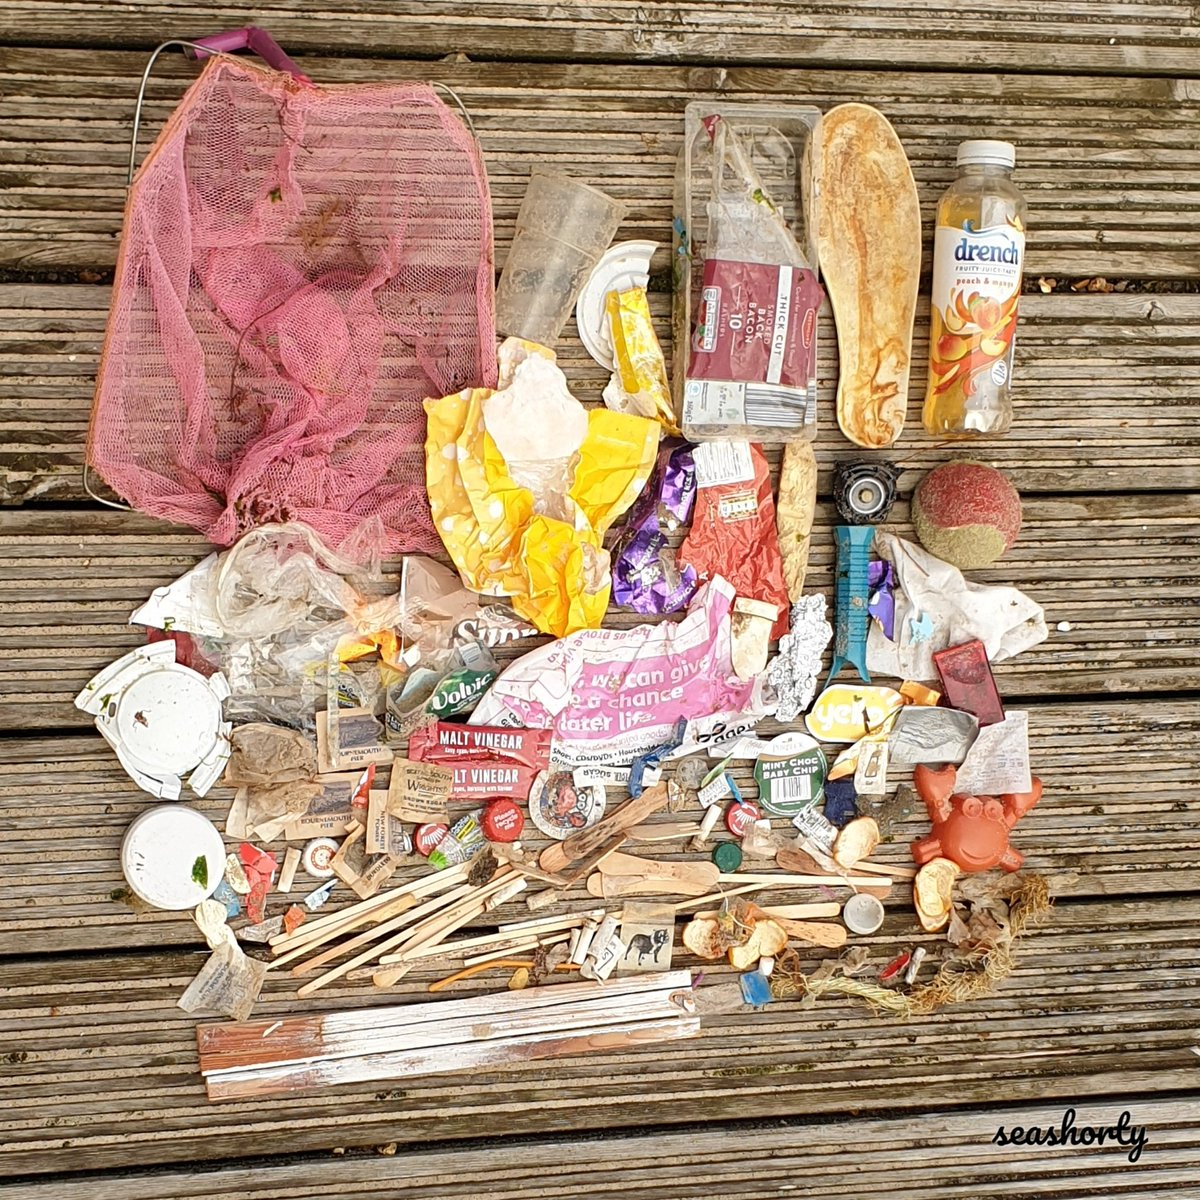 The rain finally stopped and I headed for the beach! Another 142 pieces today. Slowly changing to more marine litter, although still a lot of dropped items #waronplastic #litter #2minutebeachclean #LitterFreeCoast #saynotosingleuse #plasticpollution #Dorset #Mudeford <br>http://pic.twitter.com/ZzwlvGVgIu